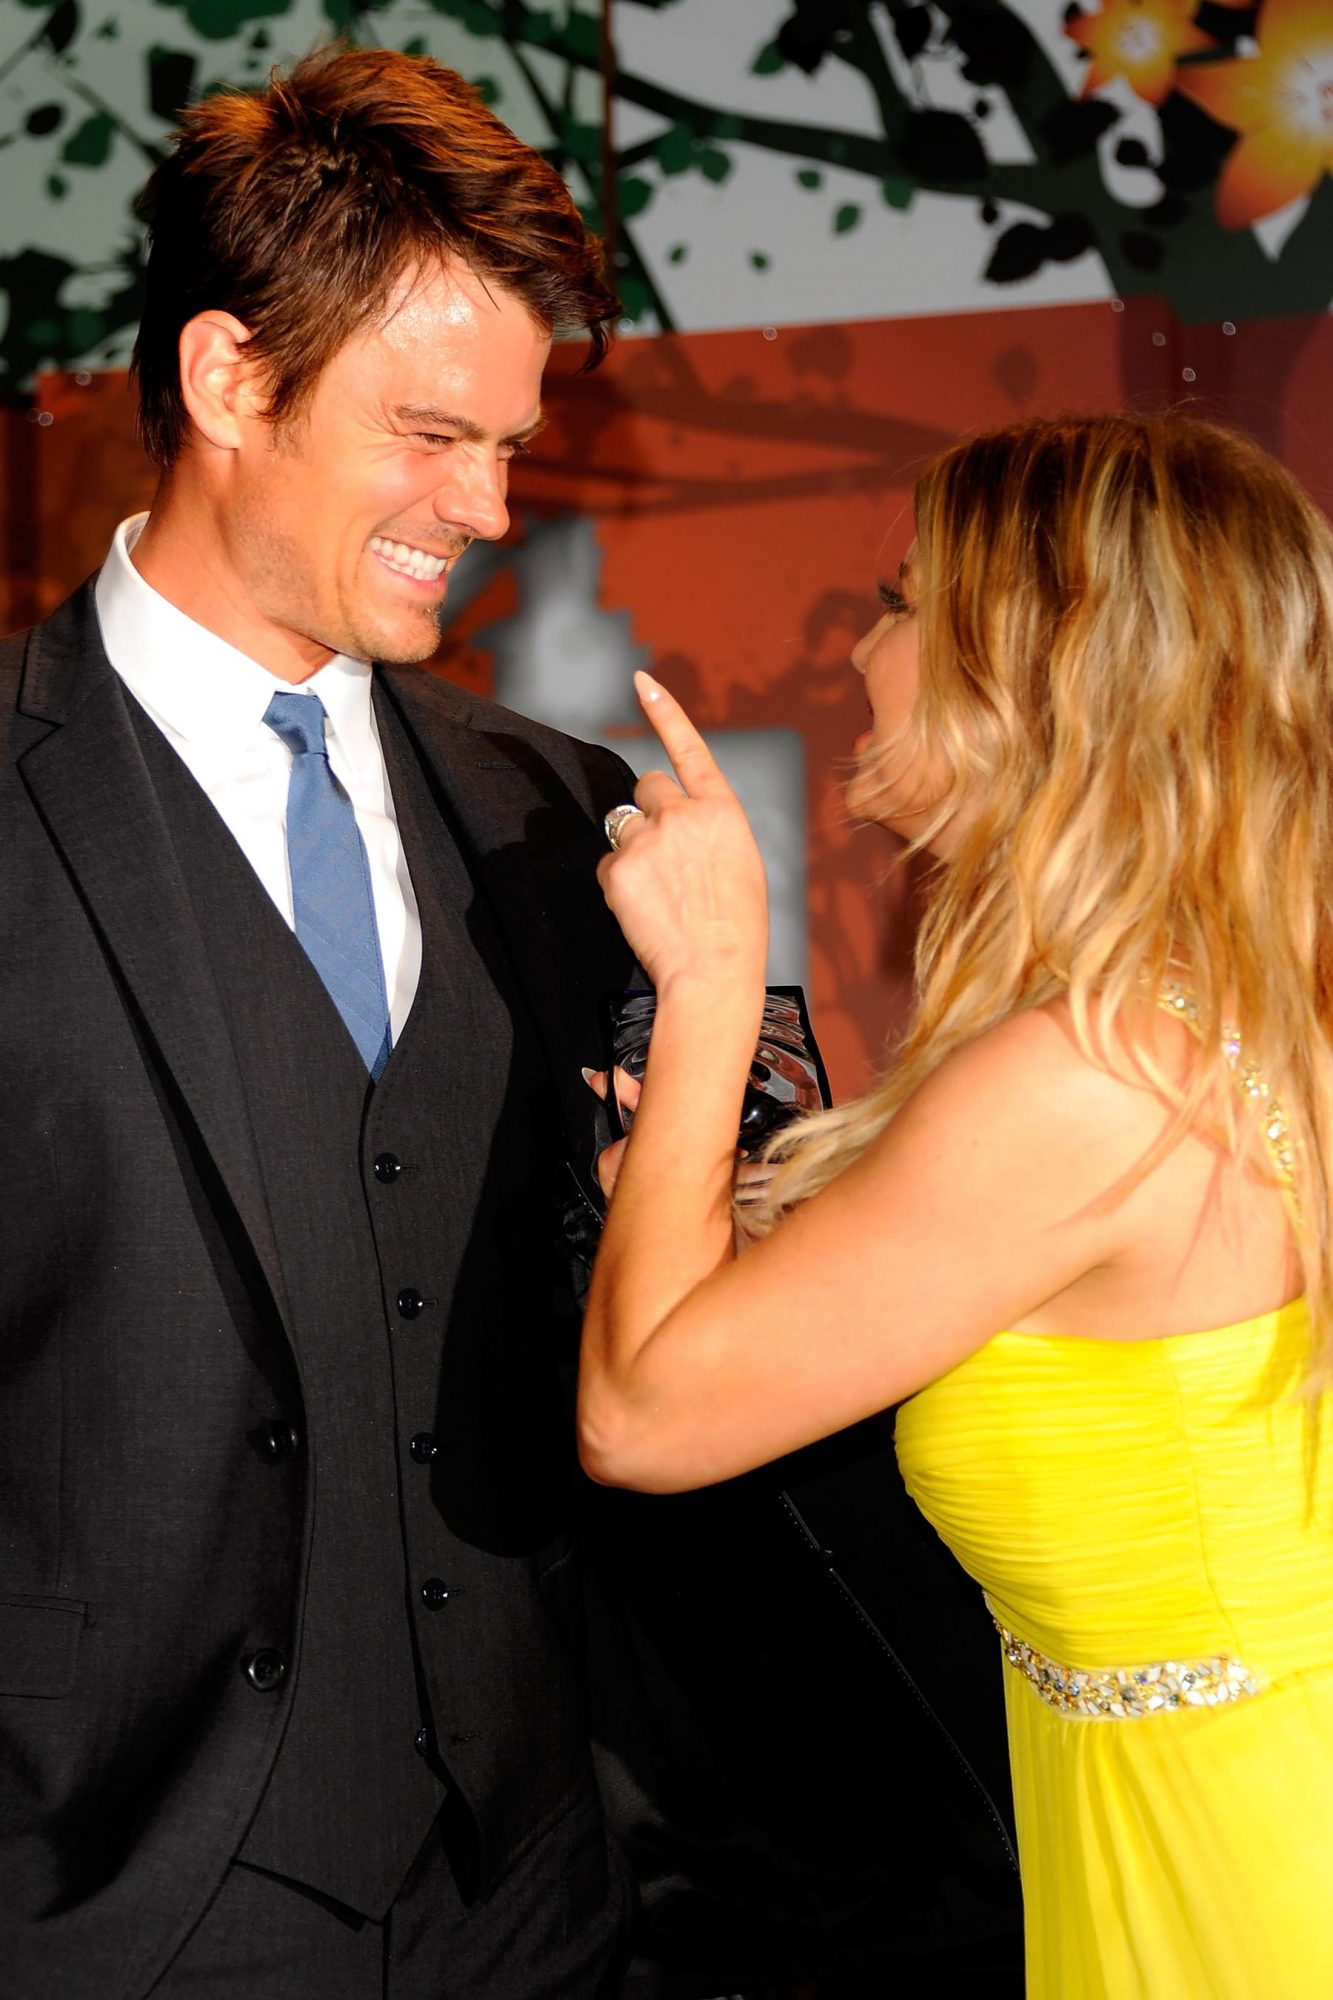 Fergie and Josh Duhamel at the 2011 FiFi Awards on May 25, 2011